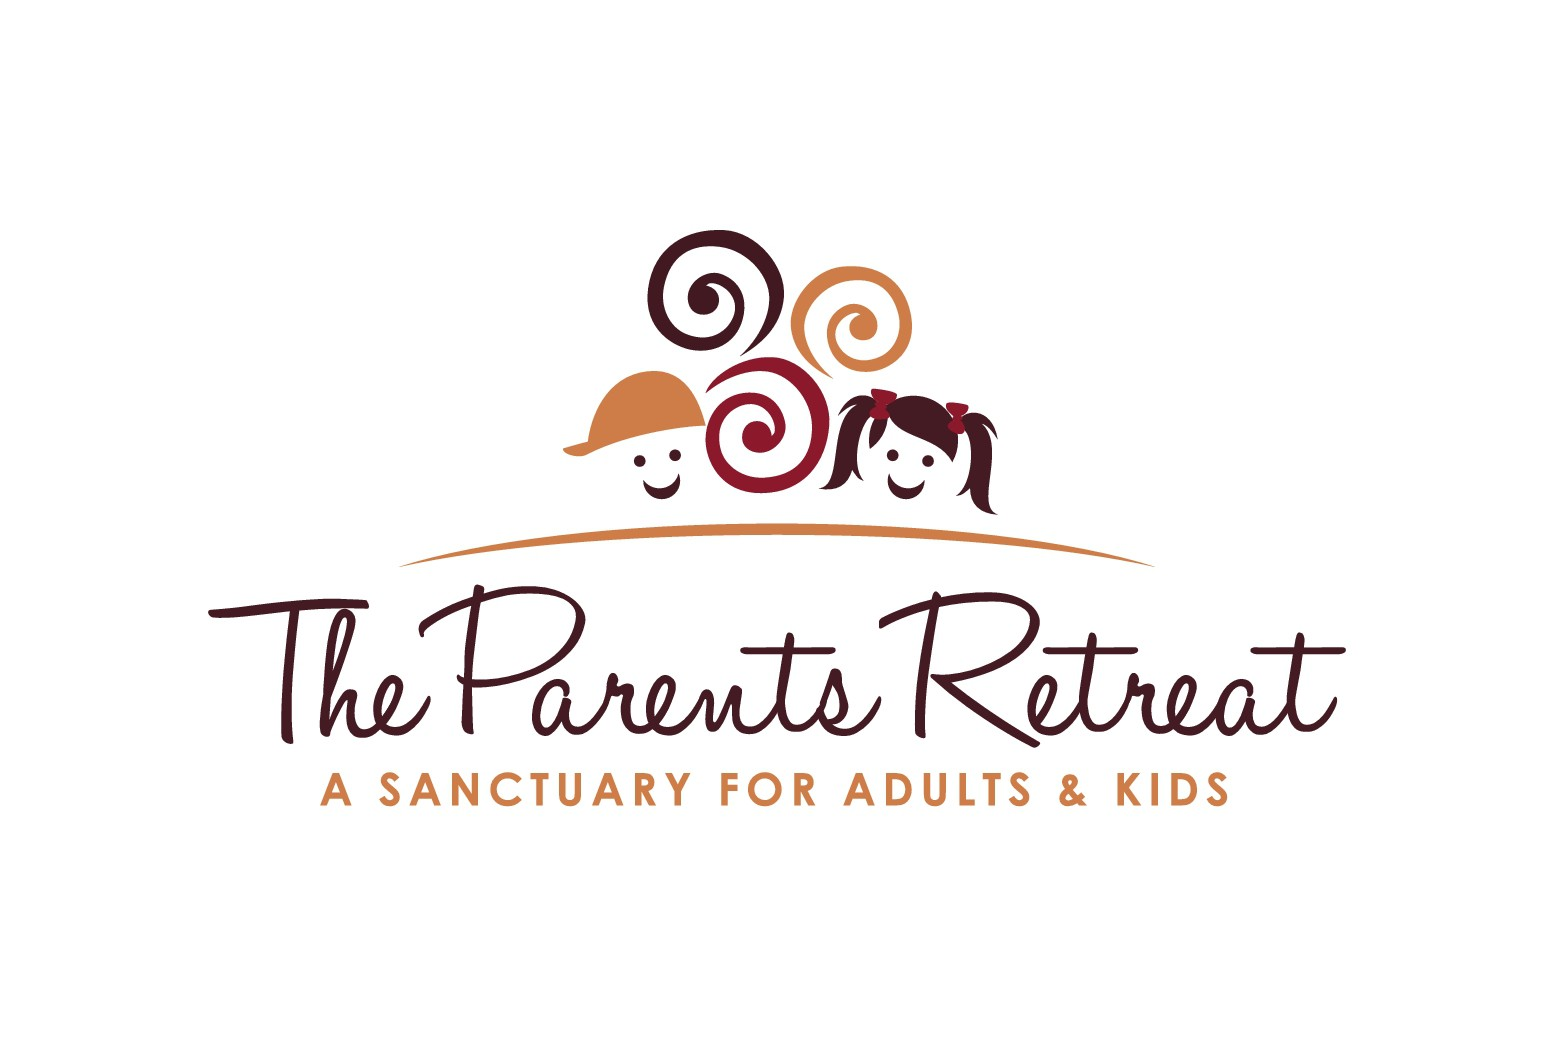 Create a luxurious image with kid-friendly components for a new concept, The Parents Retreat